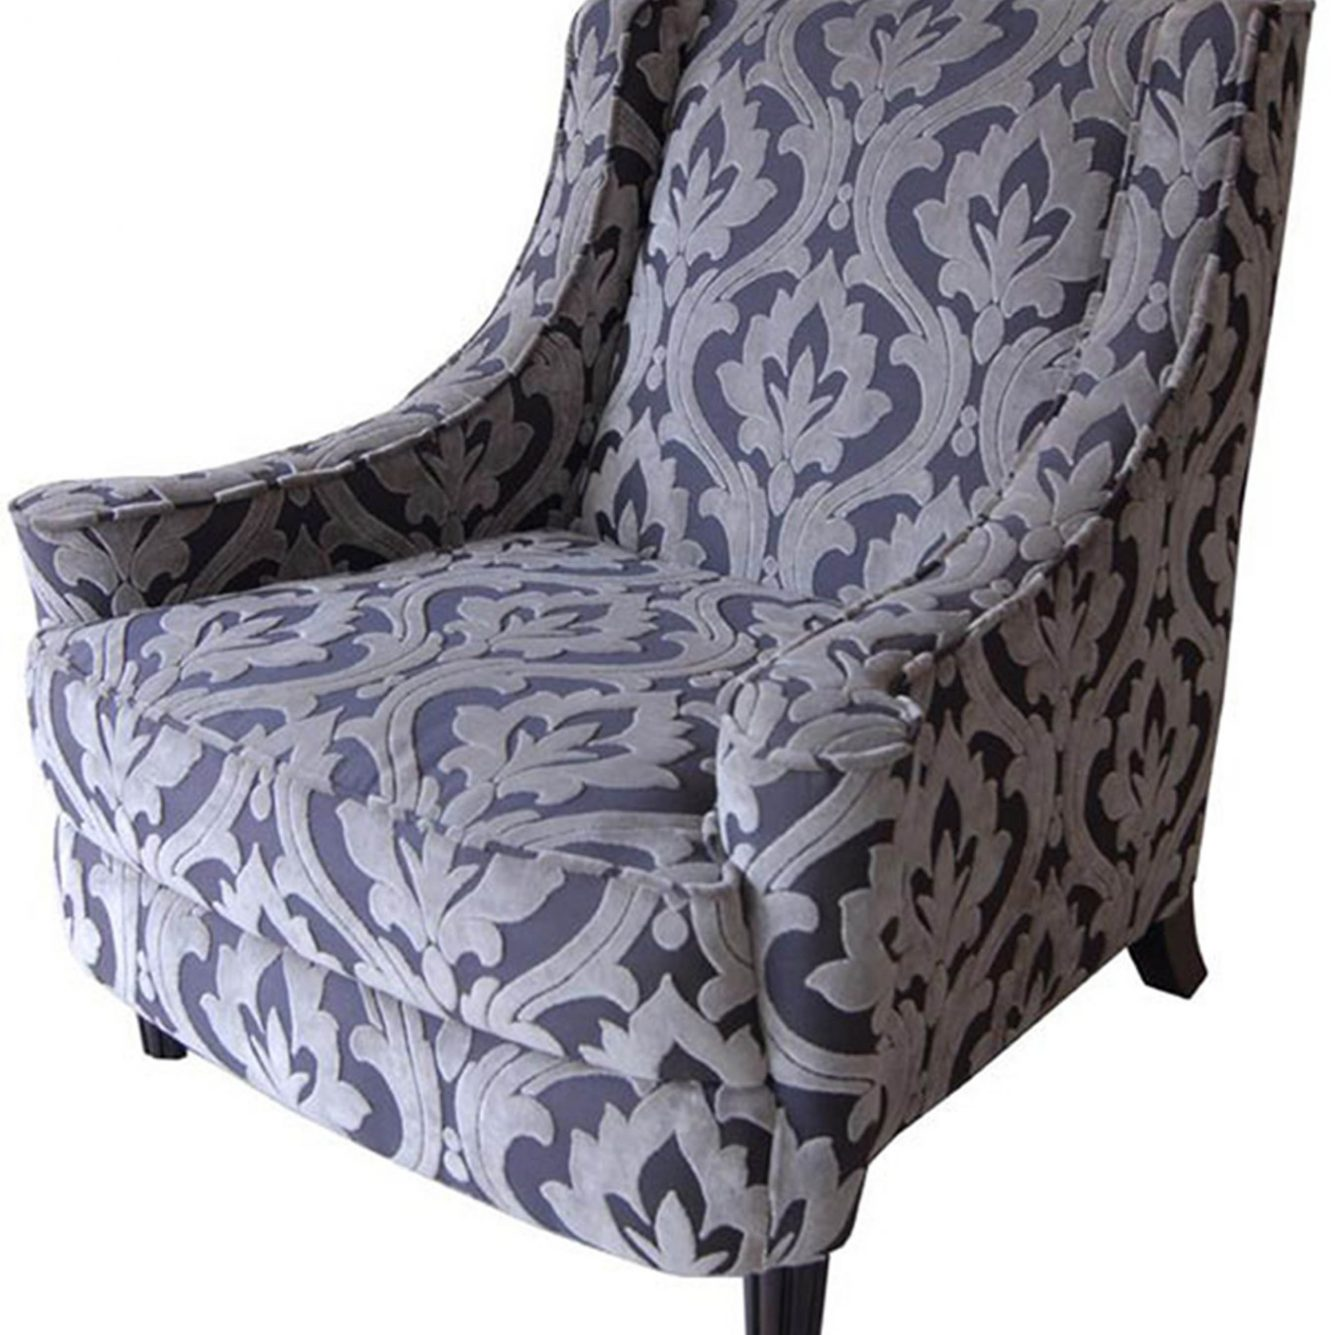 House Haven Occasional Chairs 0033 Barbara Barry Lounger